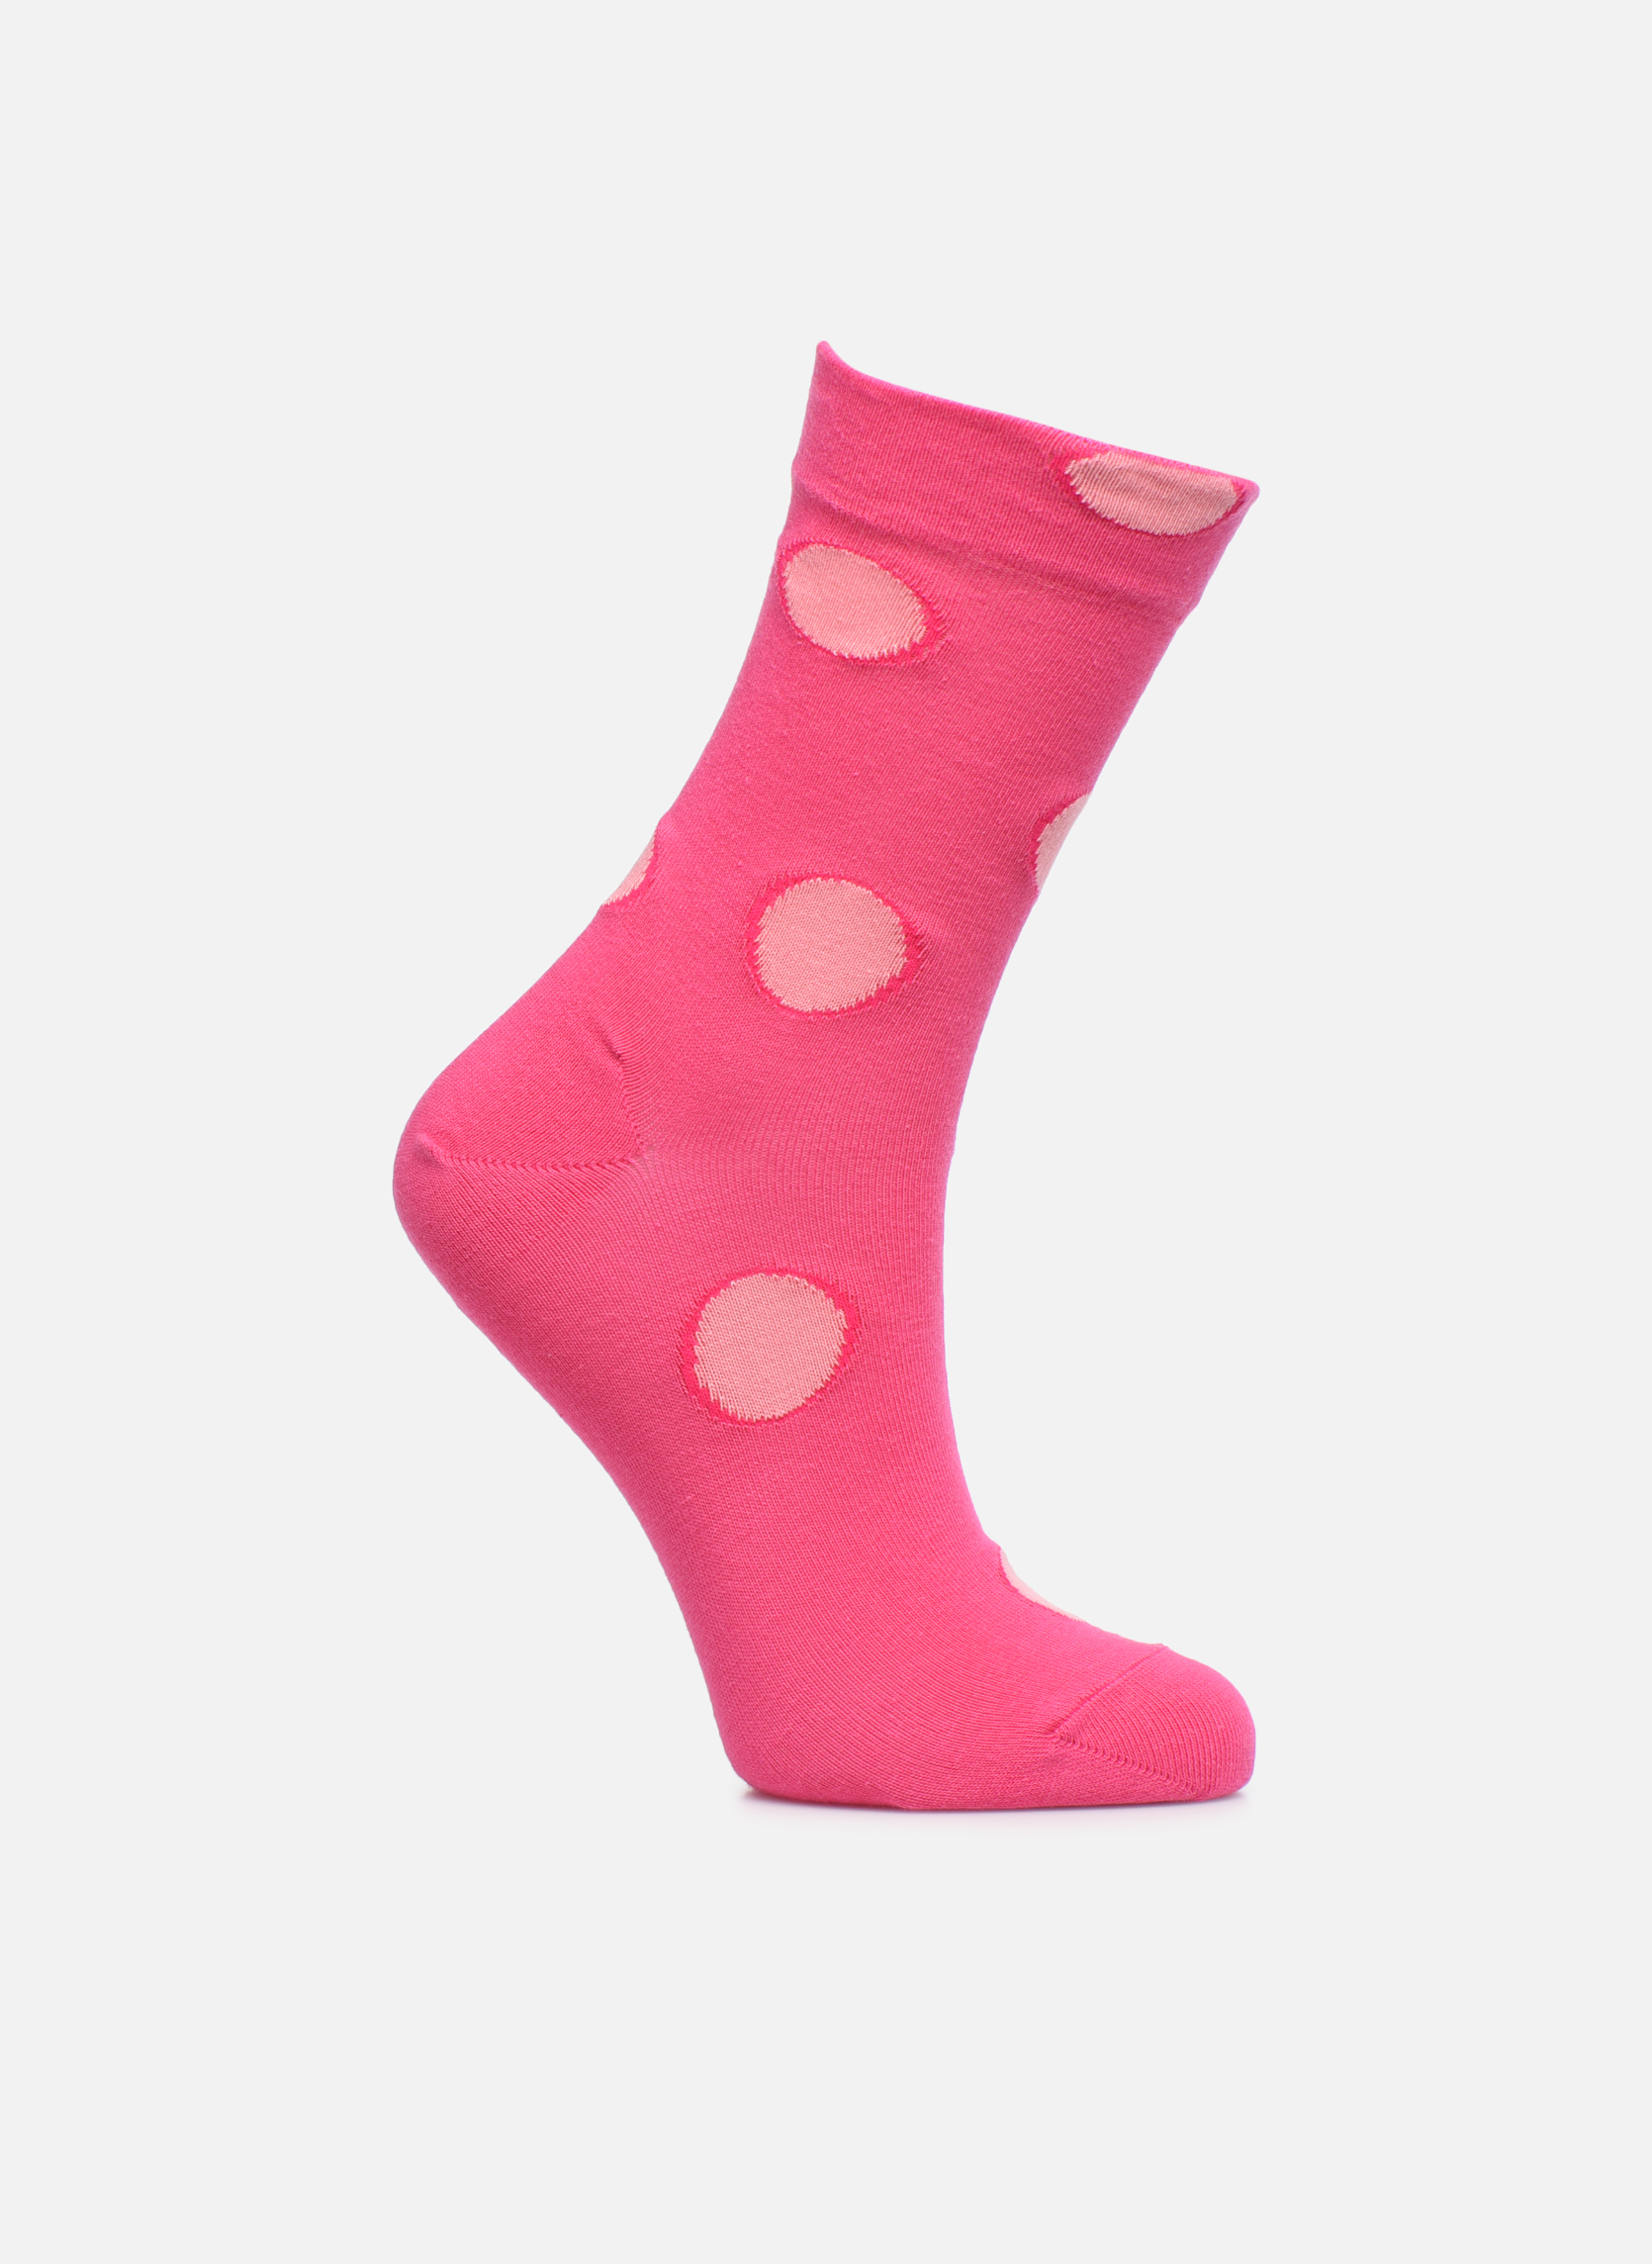 Socquettes Enfant Coton Spotted SO 8550 Gloss